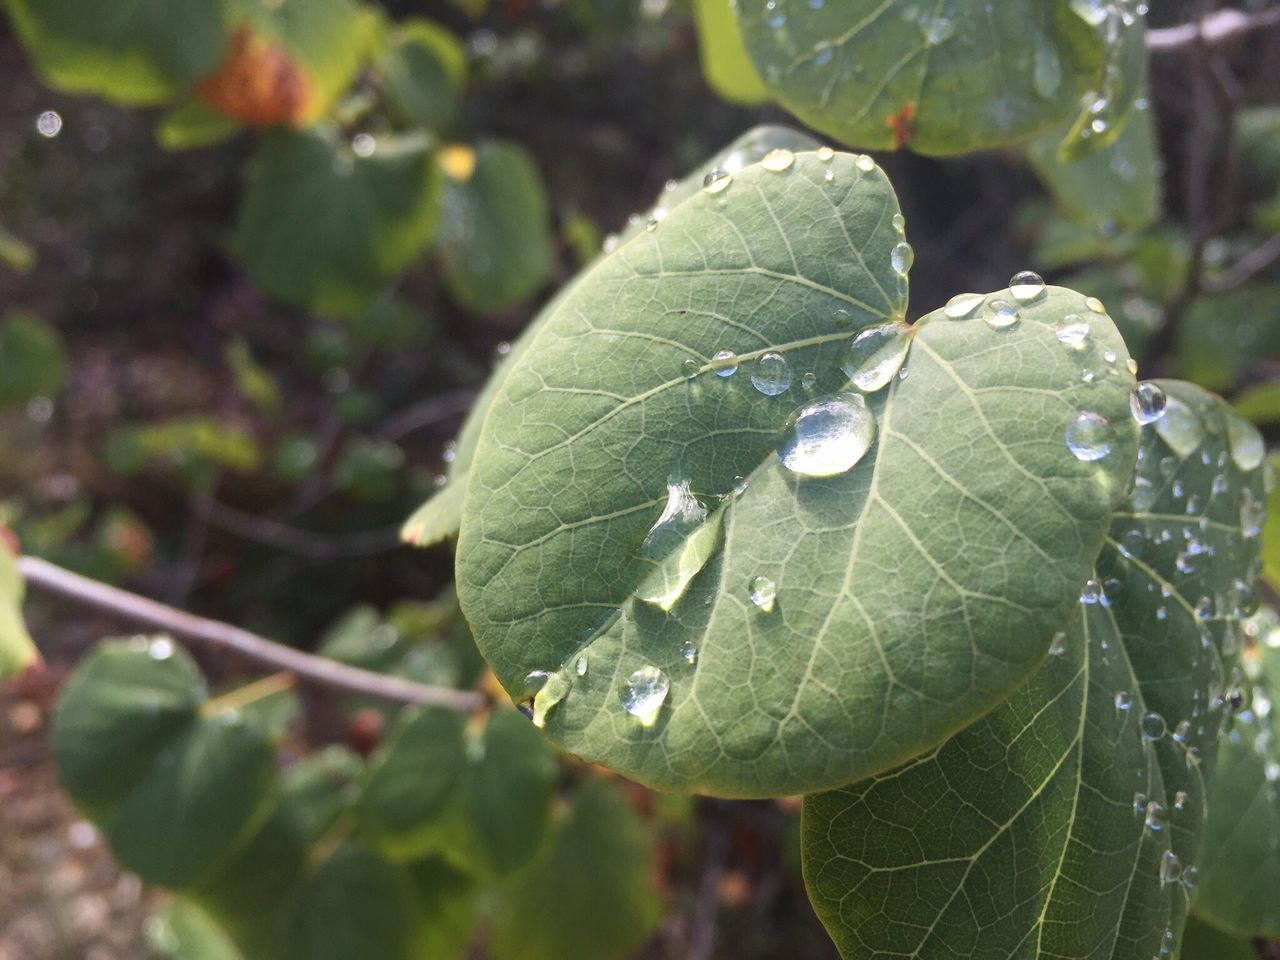 leaf, drop, nature, growth, green color, close-up, day, plant, beauty in nature, focus on foreground, fragility, wet, outdoors, freshness, water, no people